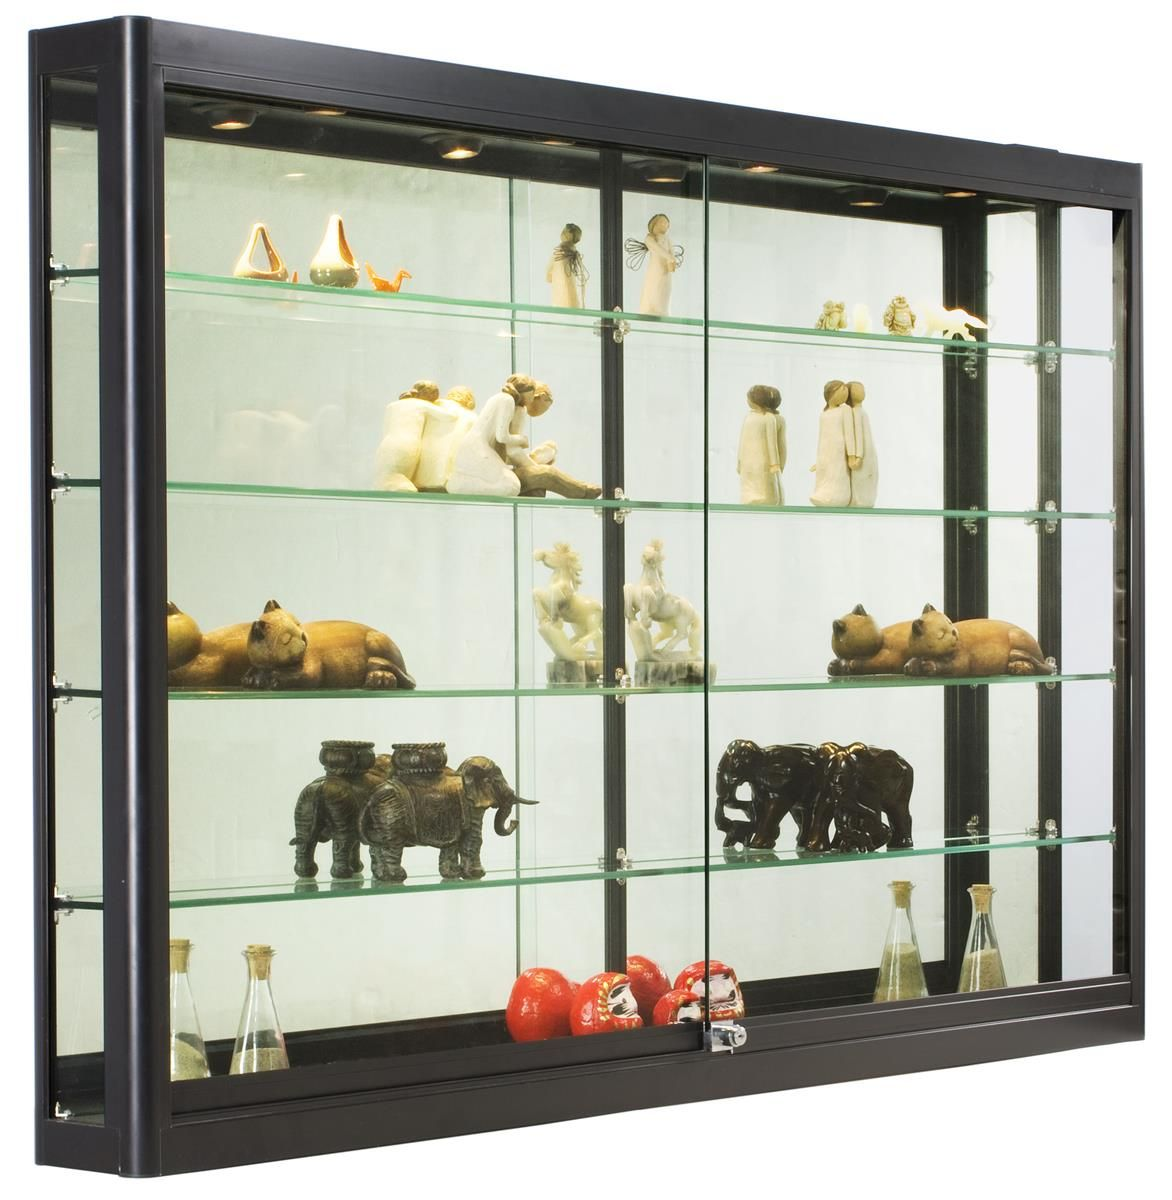 Ft Wall Mounted Display Case W Top Halogen Lights Mirror - Display shelves collectibles wall shelves for collectibles display